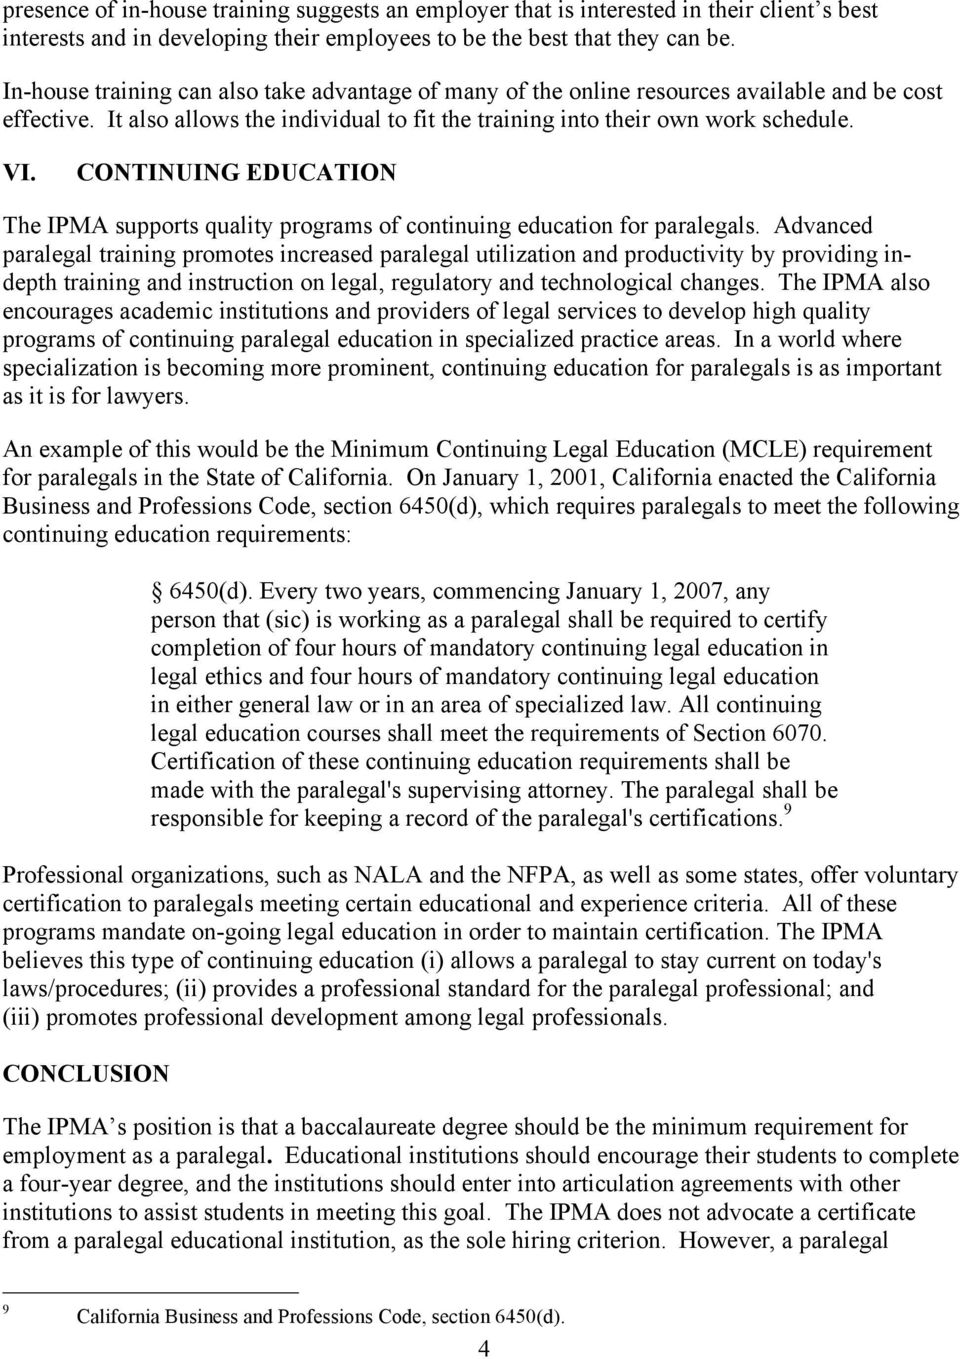 CONTINUING EDUCATION The IPMA supports quality programs of continuing education for paralegals.